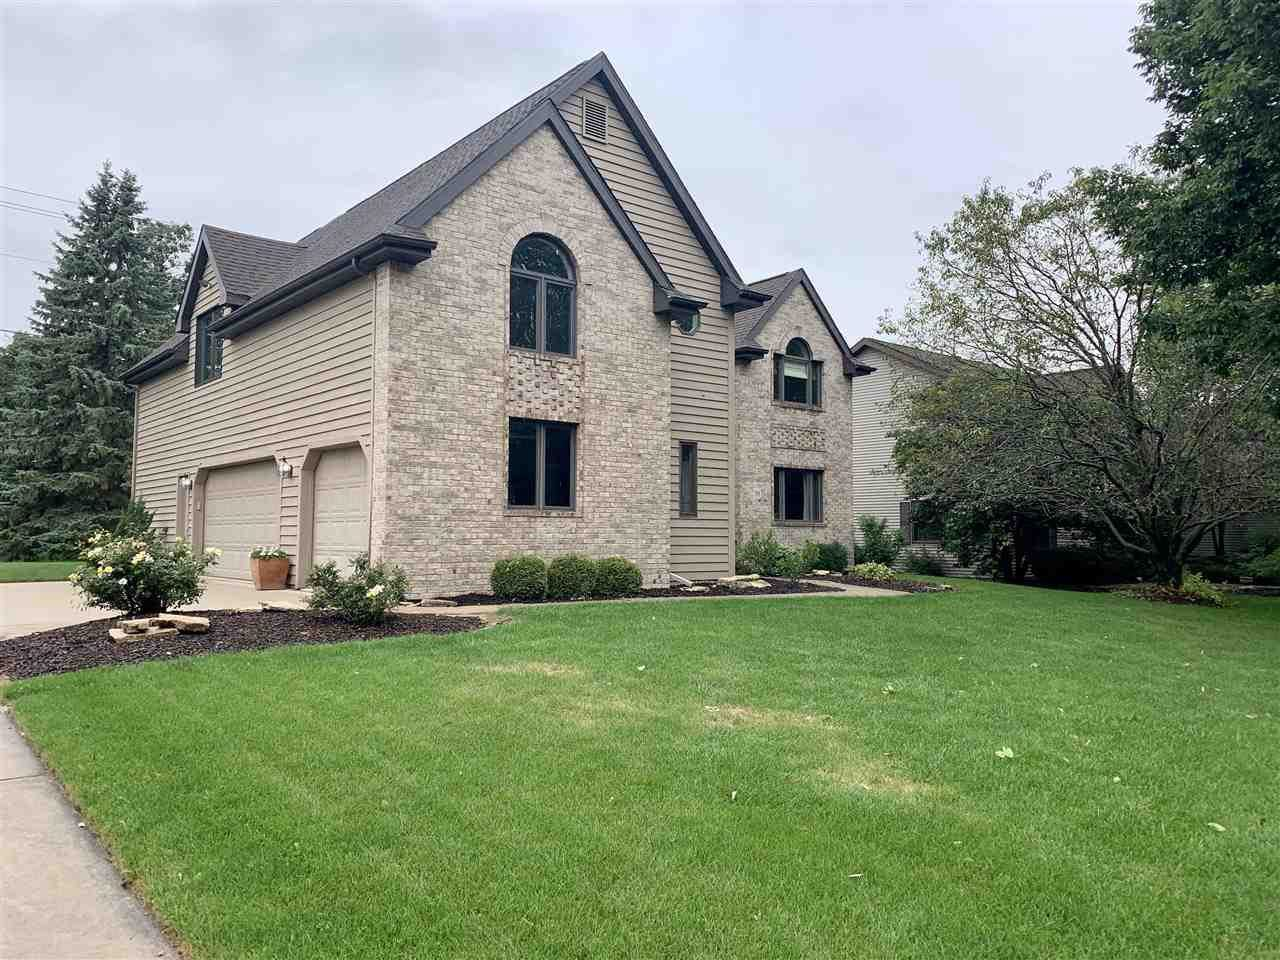 38 DENEVEU CIRCLE, Fond du Lac, WI 54935 - MLS#: 50222491